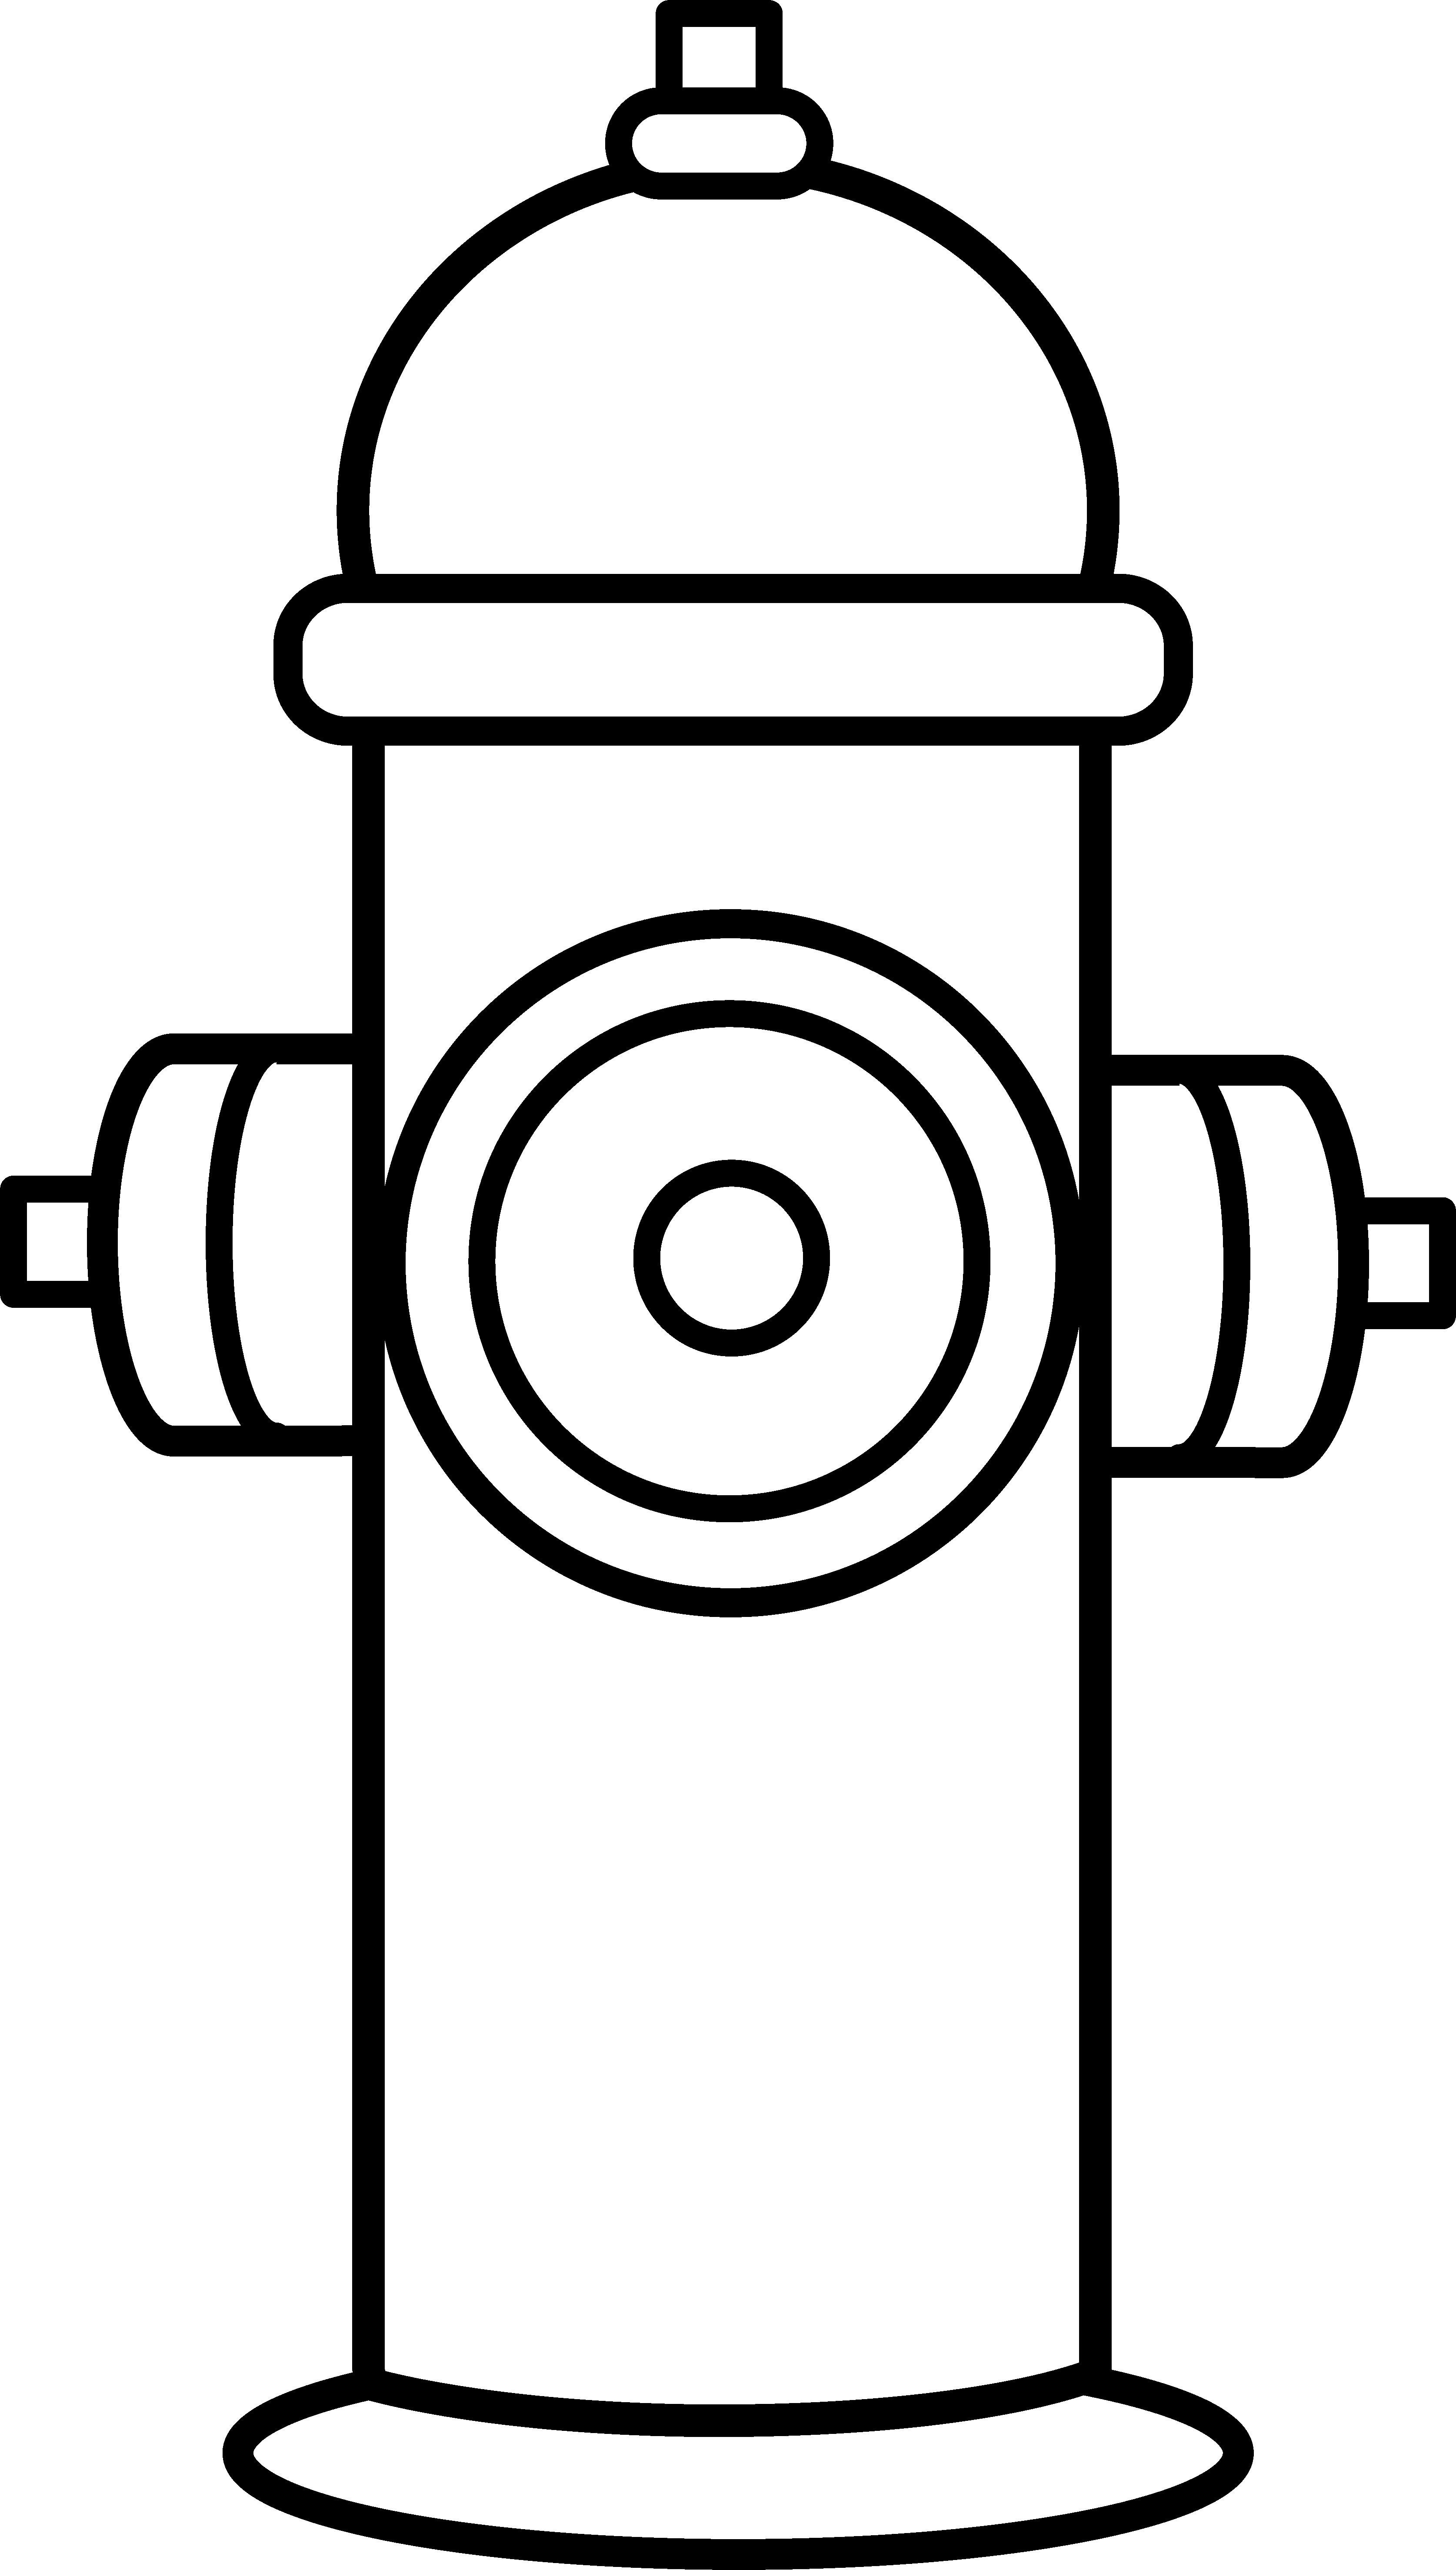 Fire Hydrant Silhouette At Getdrawings Free For Personal Use